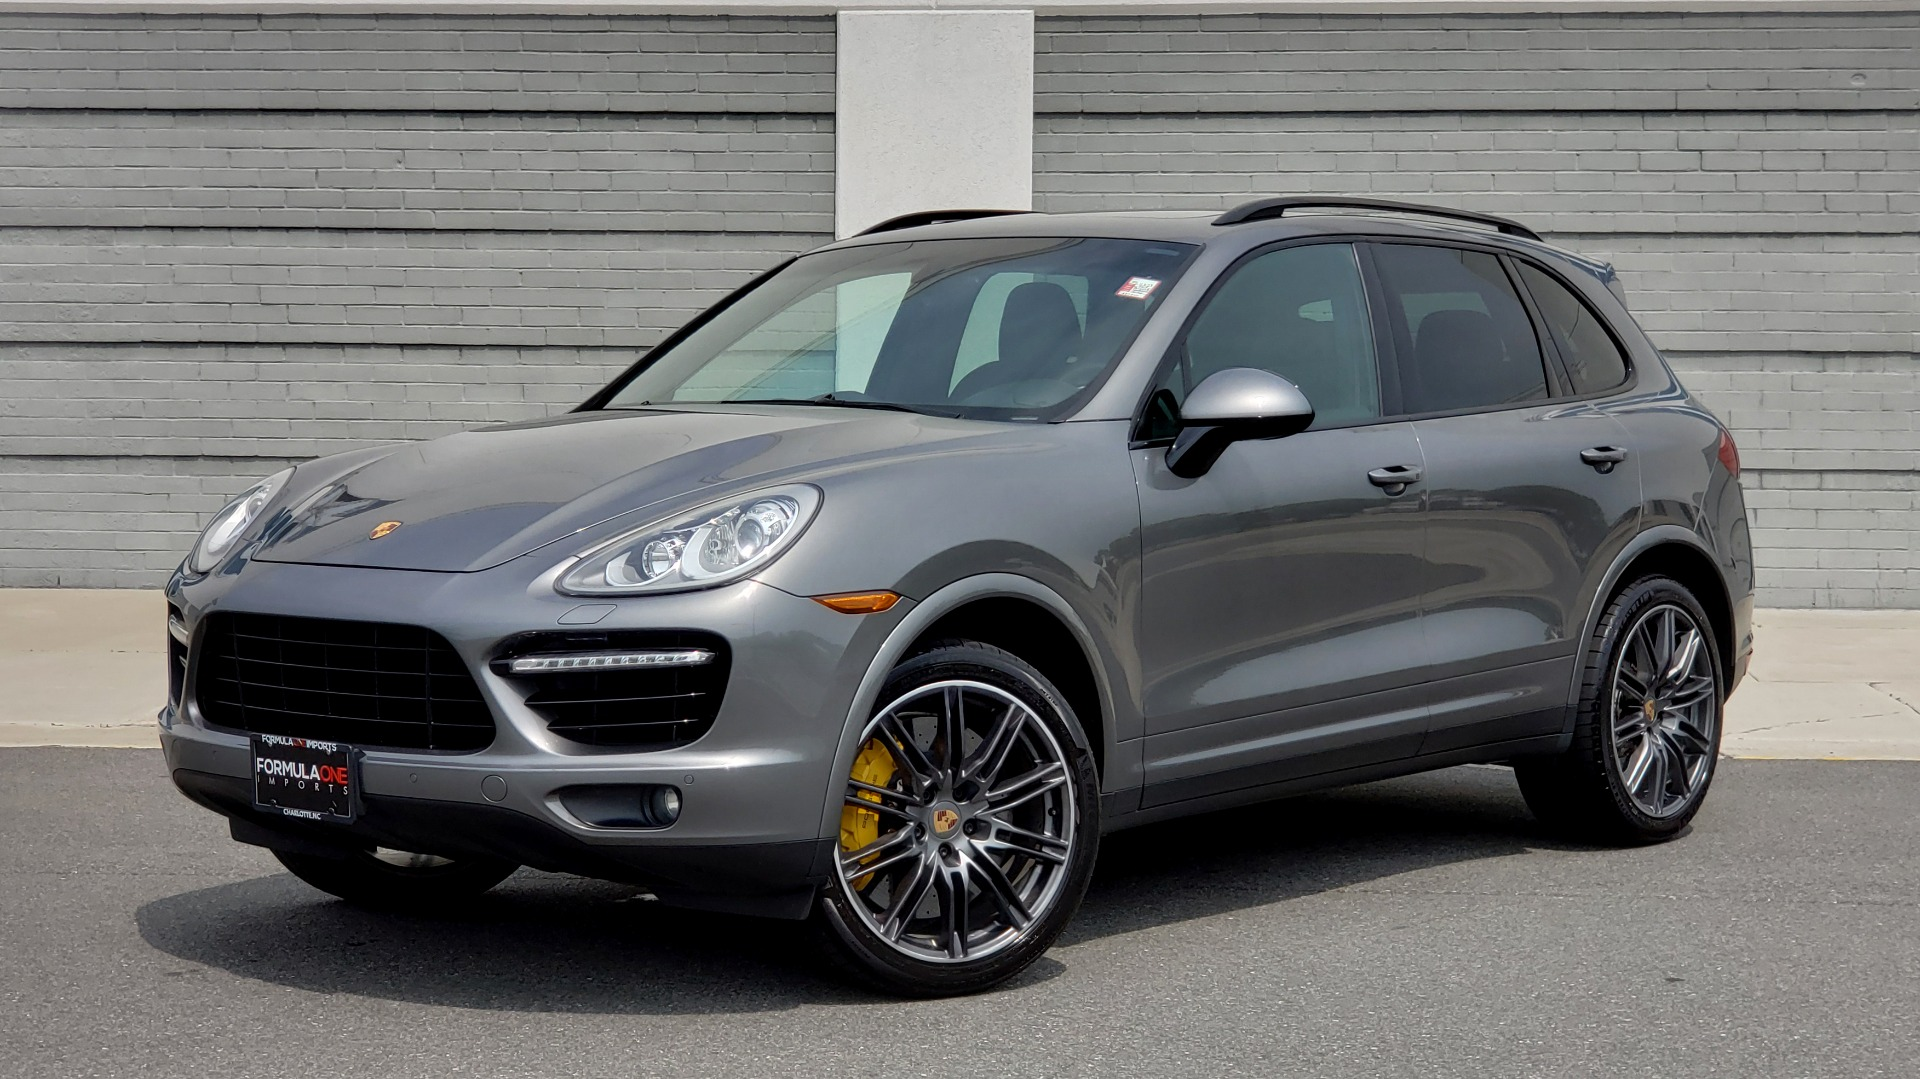 Used 2014 Porsche CAYENNE TURBO S / AWD / NAV / BOSE / PANO-ROOF / LCA / REARVIEW for sale Sold at Formula Imports in Charlotte NC 28227 1